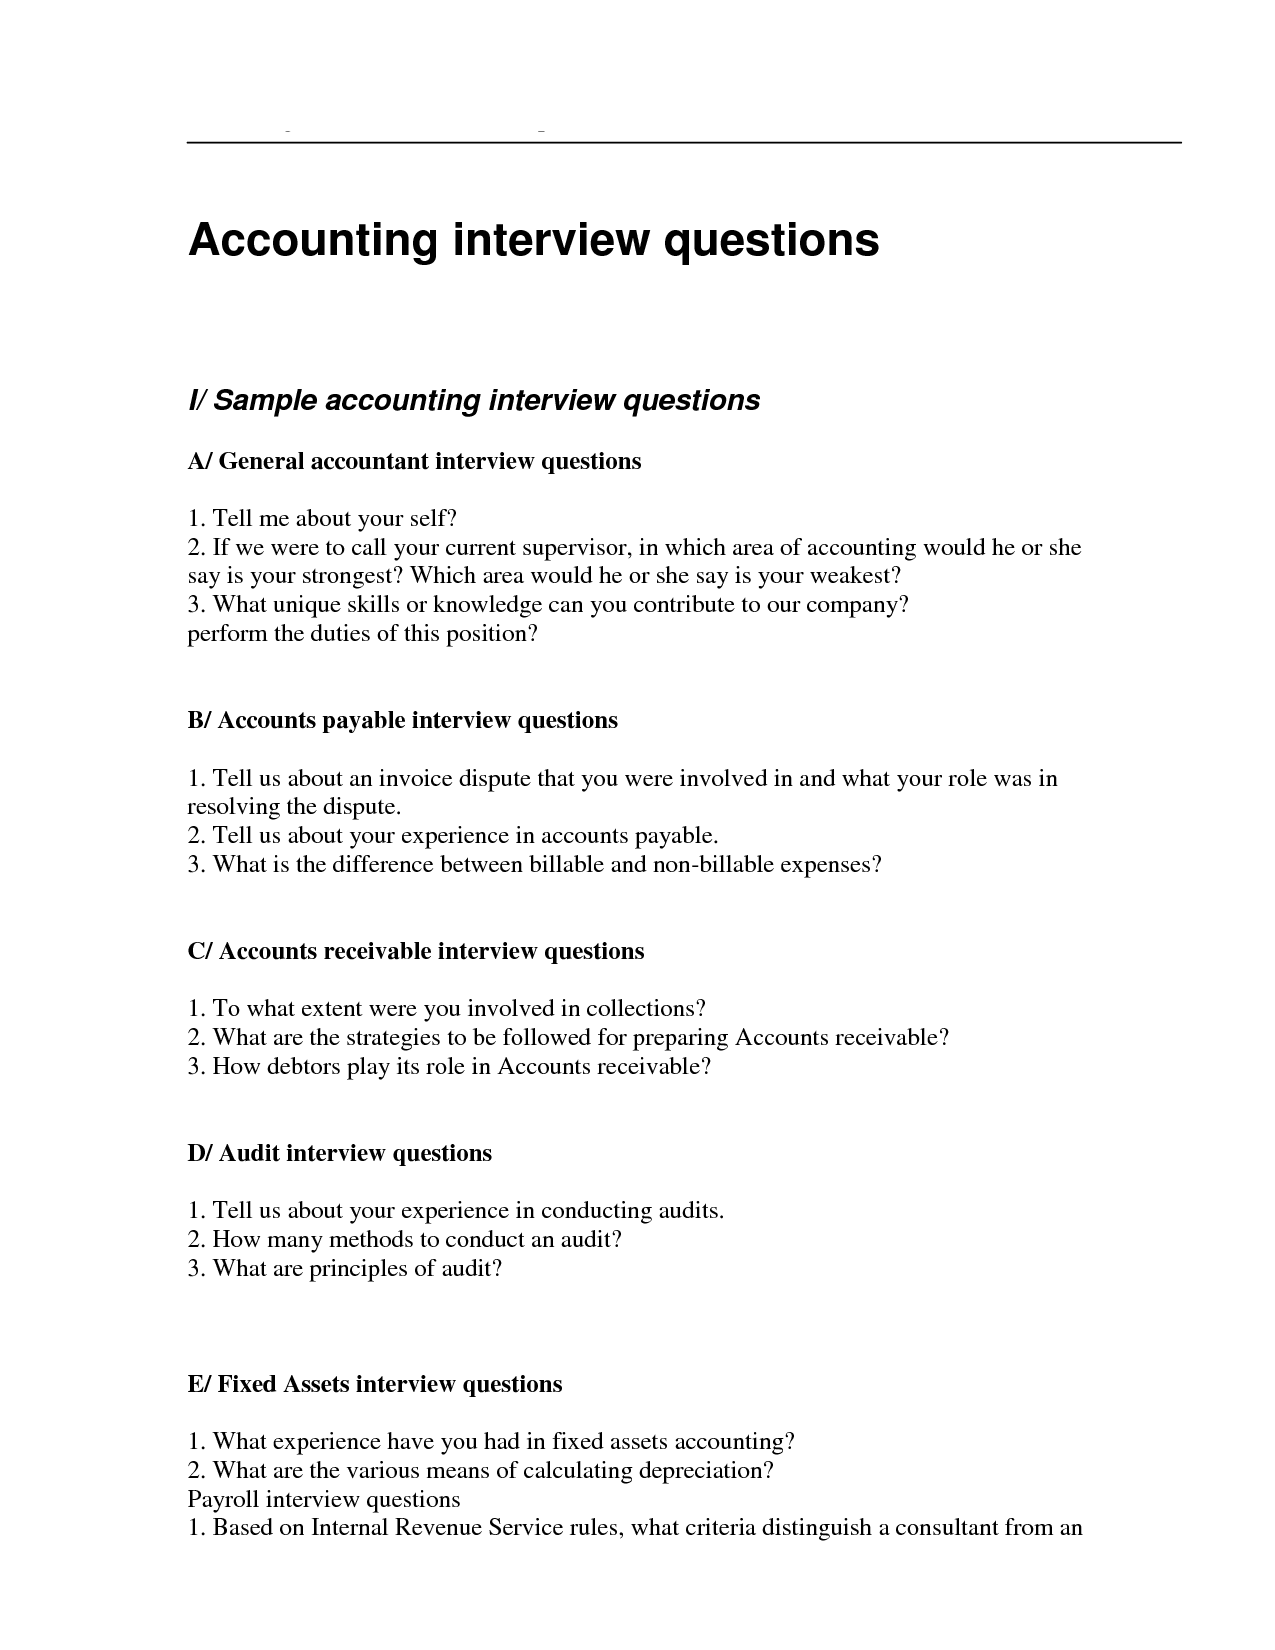 ut career services interviewing guide